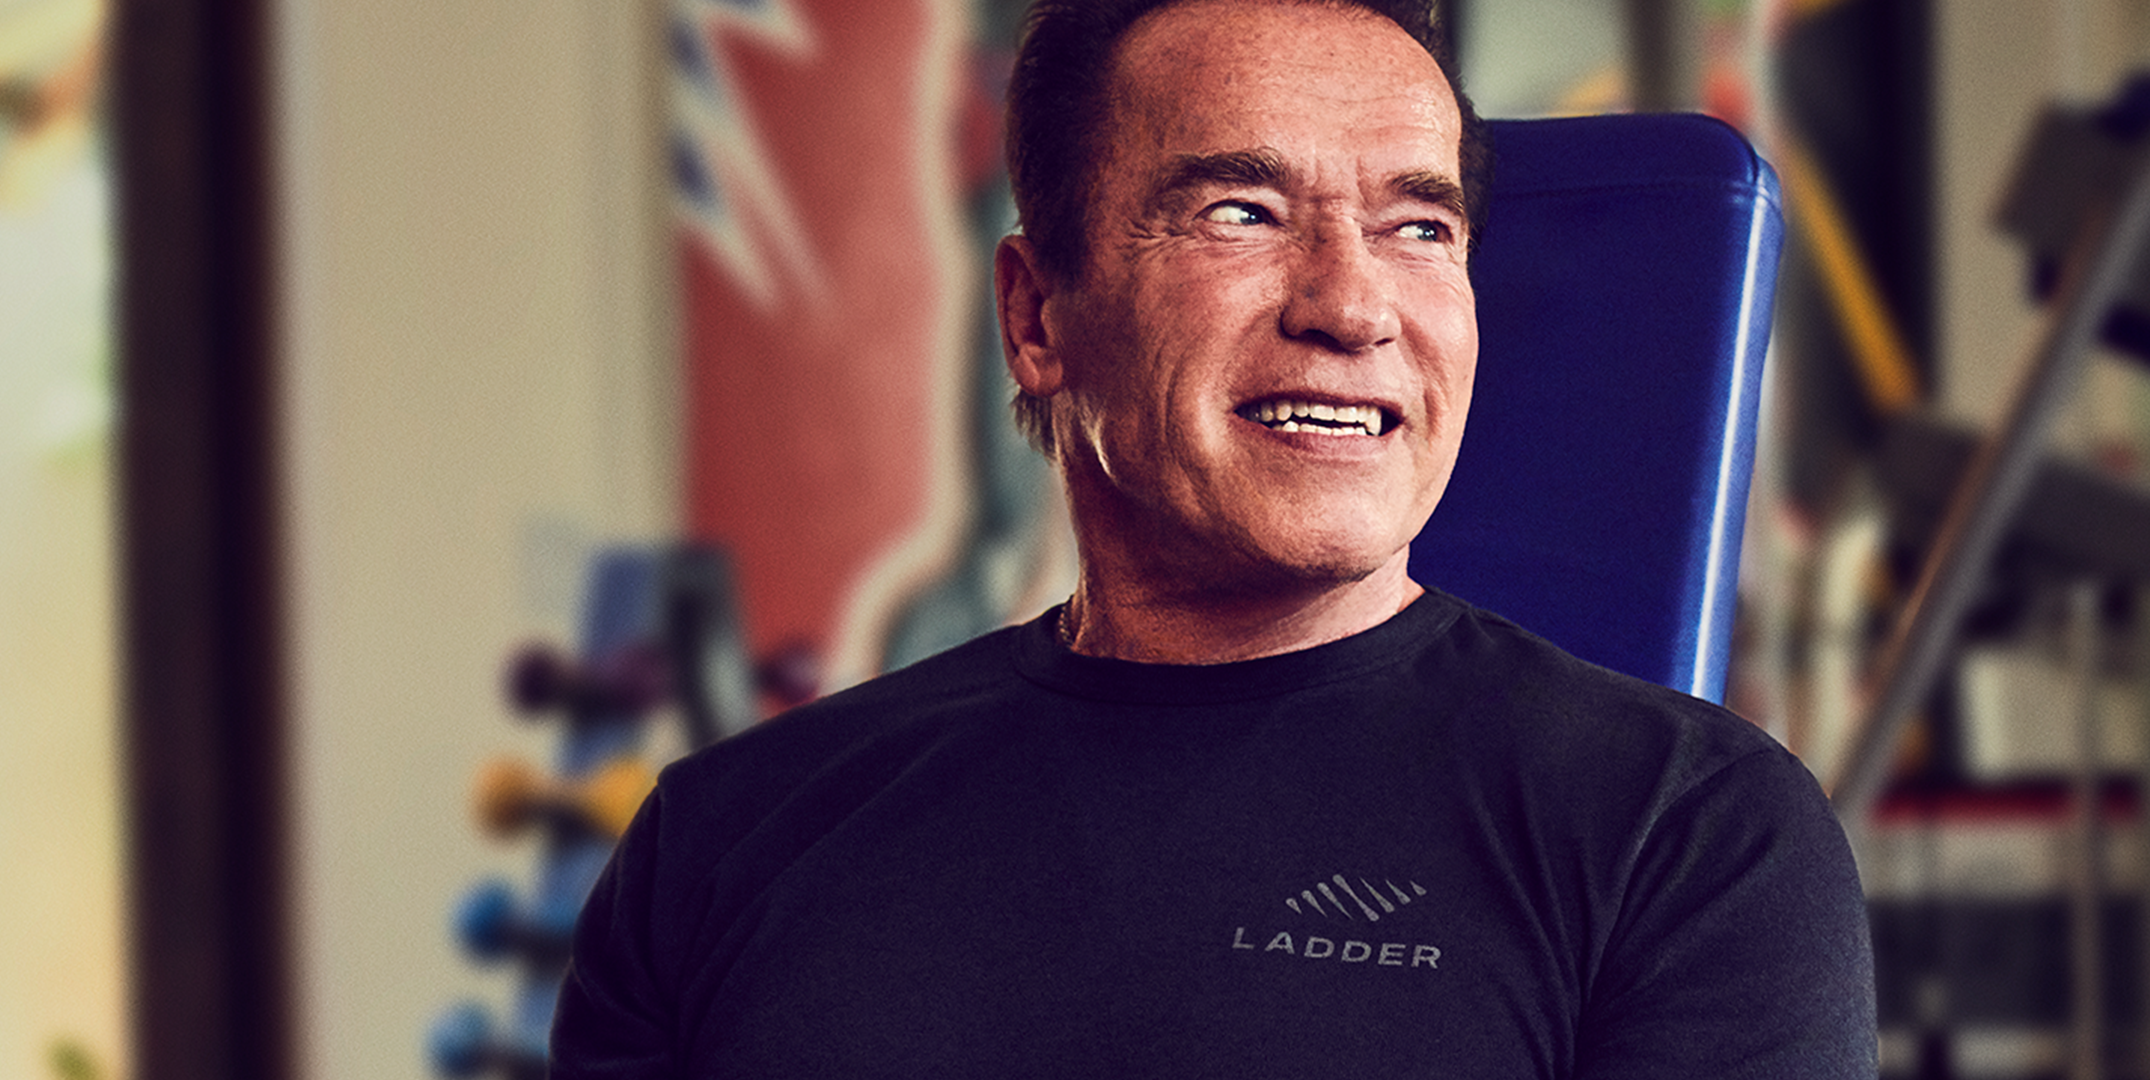 Arnold Schwarzenegger Attacked During Sporting Event in South Africa